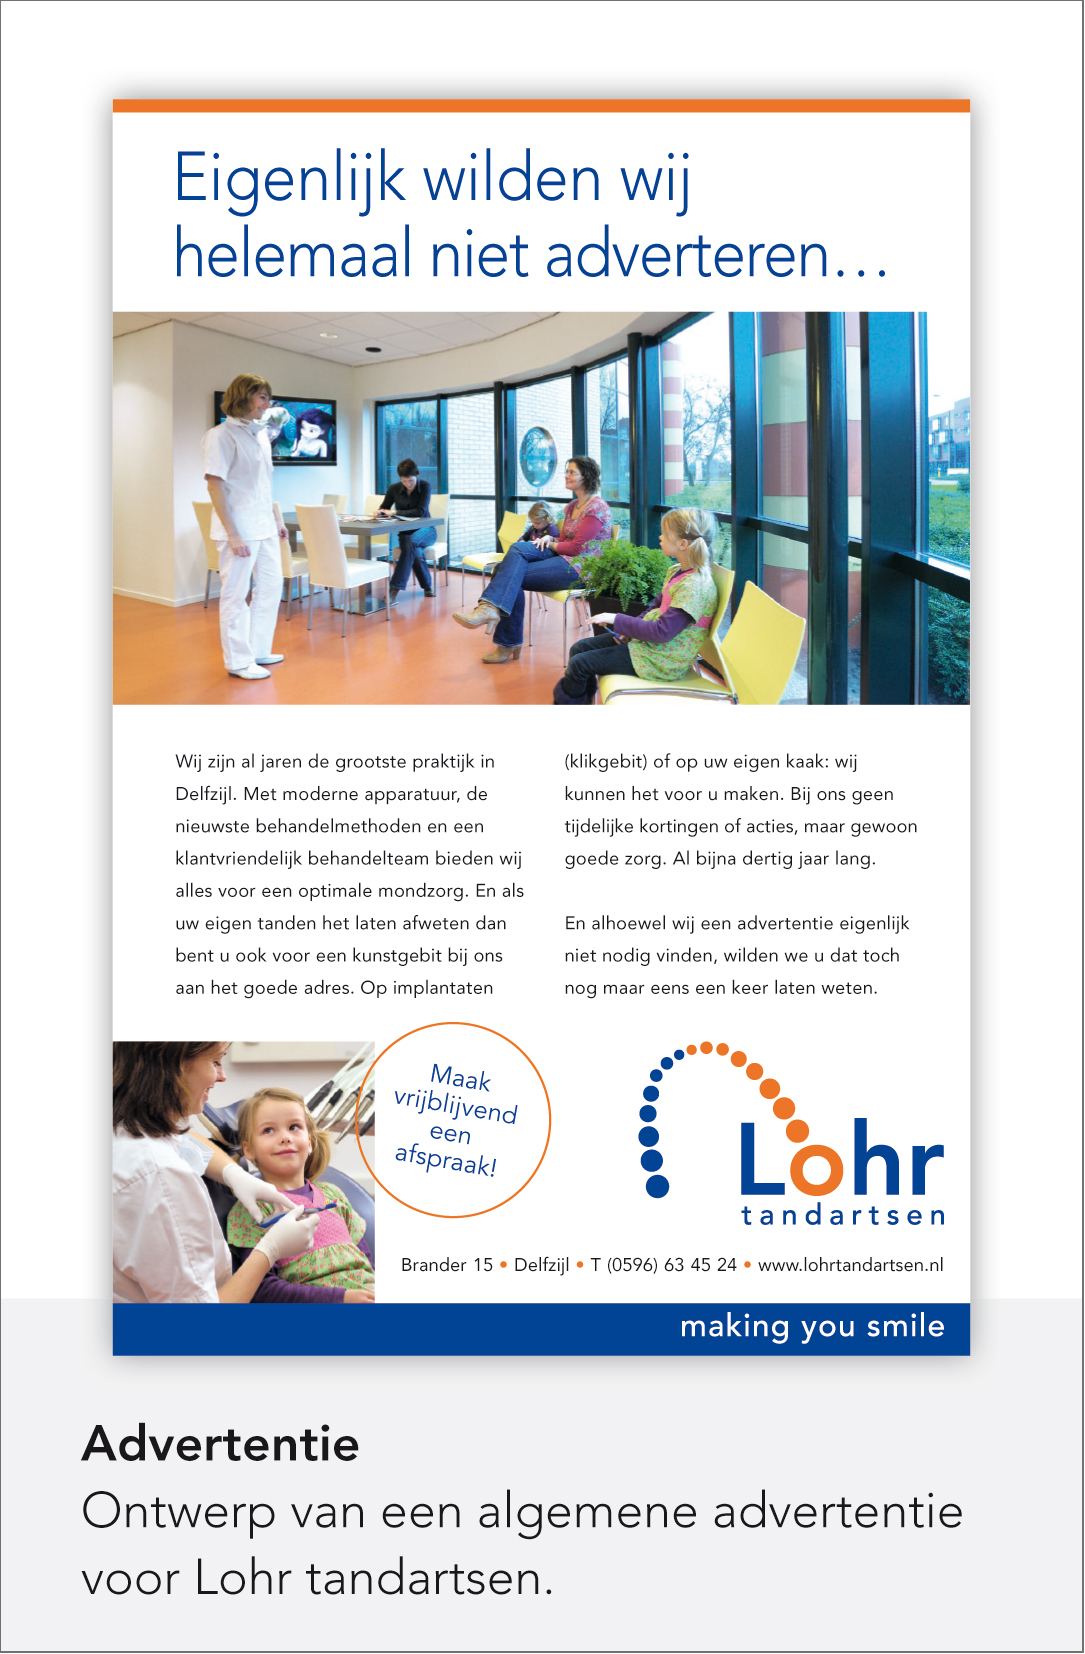 Lohr tandartsen - Corporate advertentie